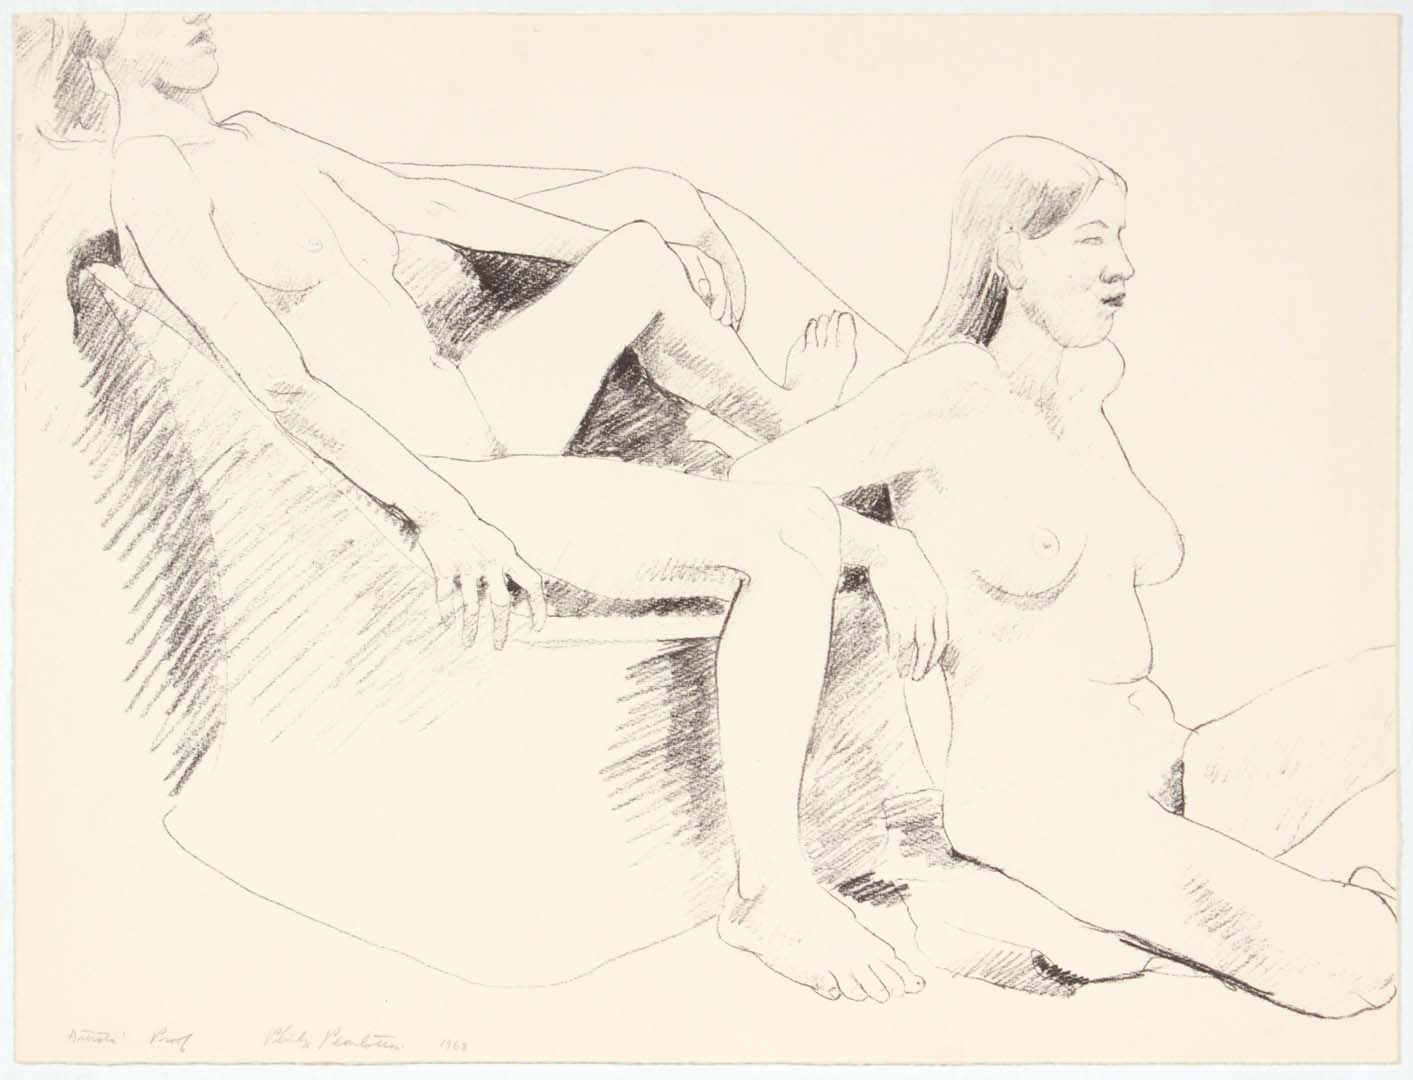 1968 NT Lithograph on Paper 15.75 x 20.75